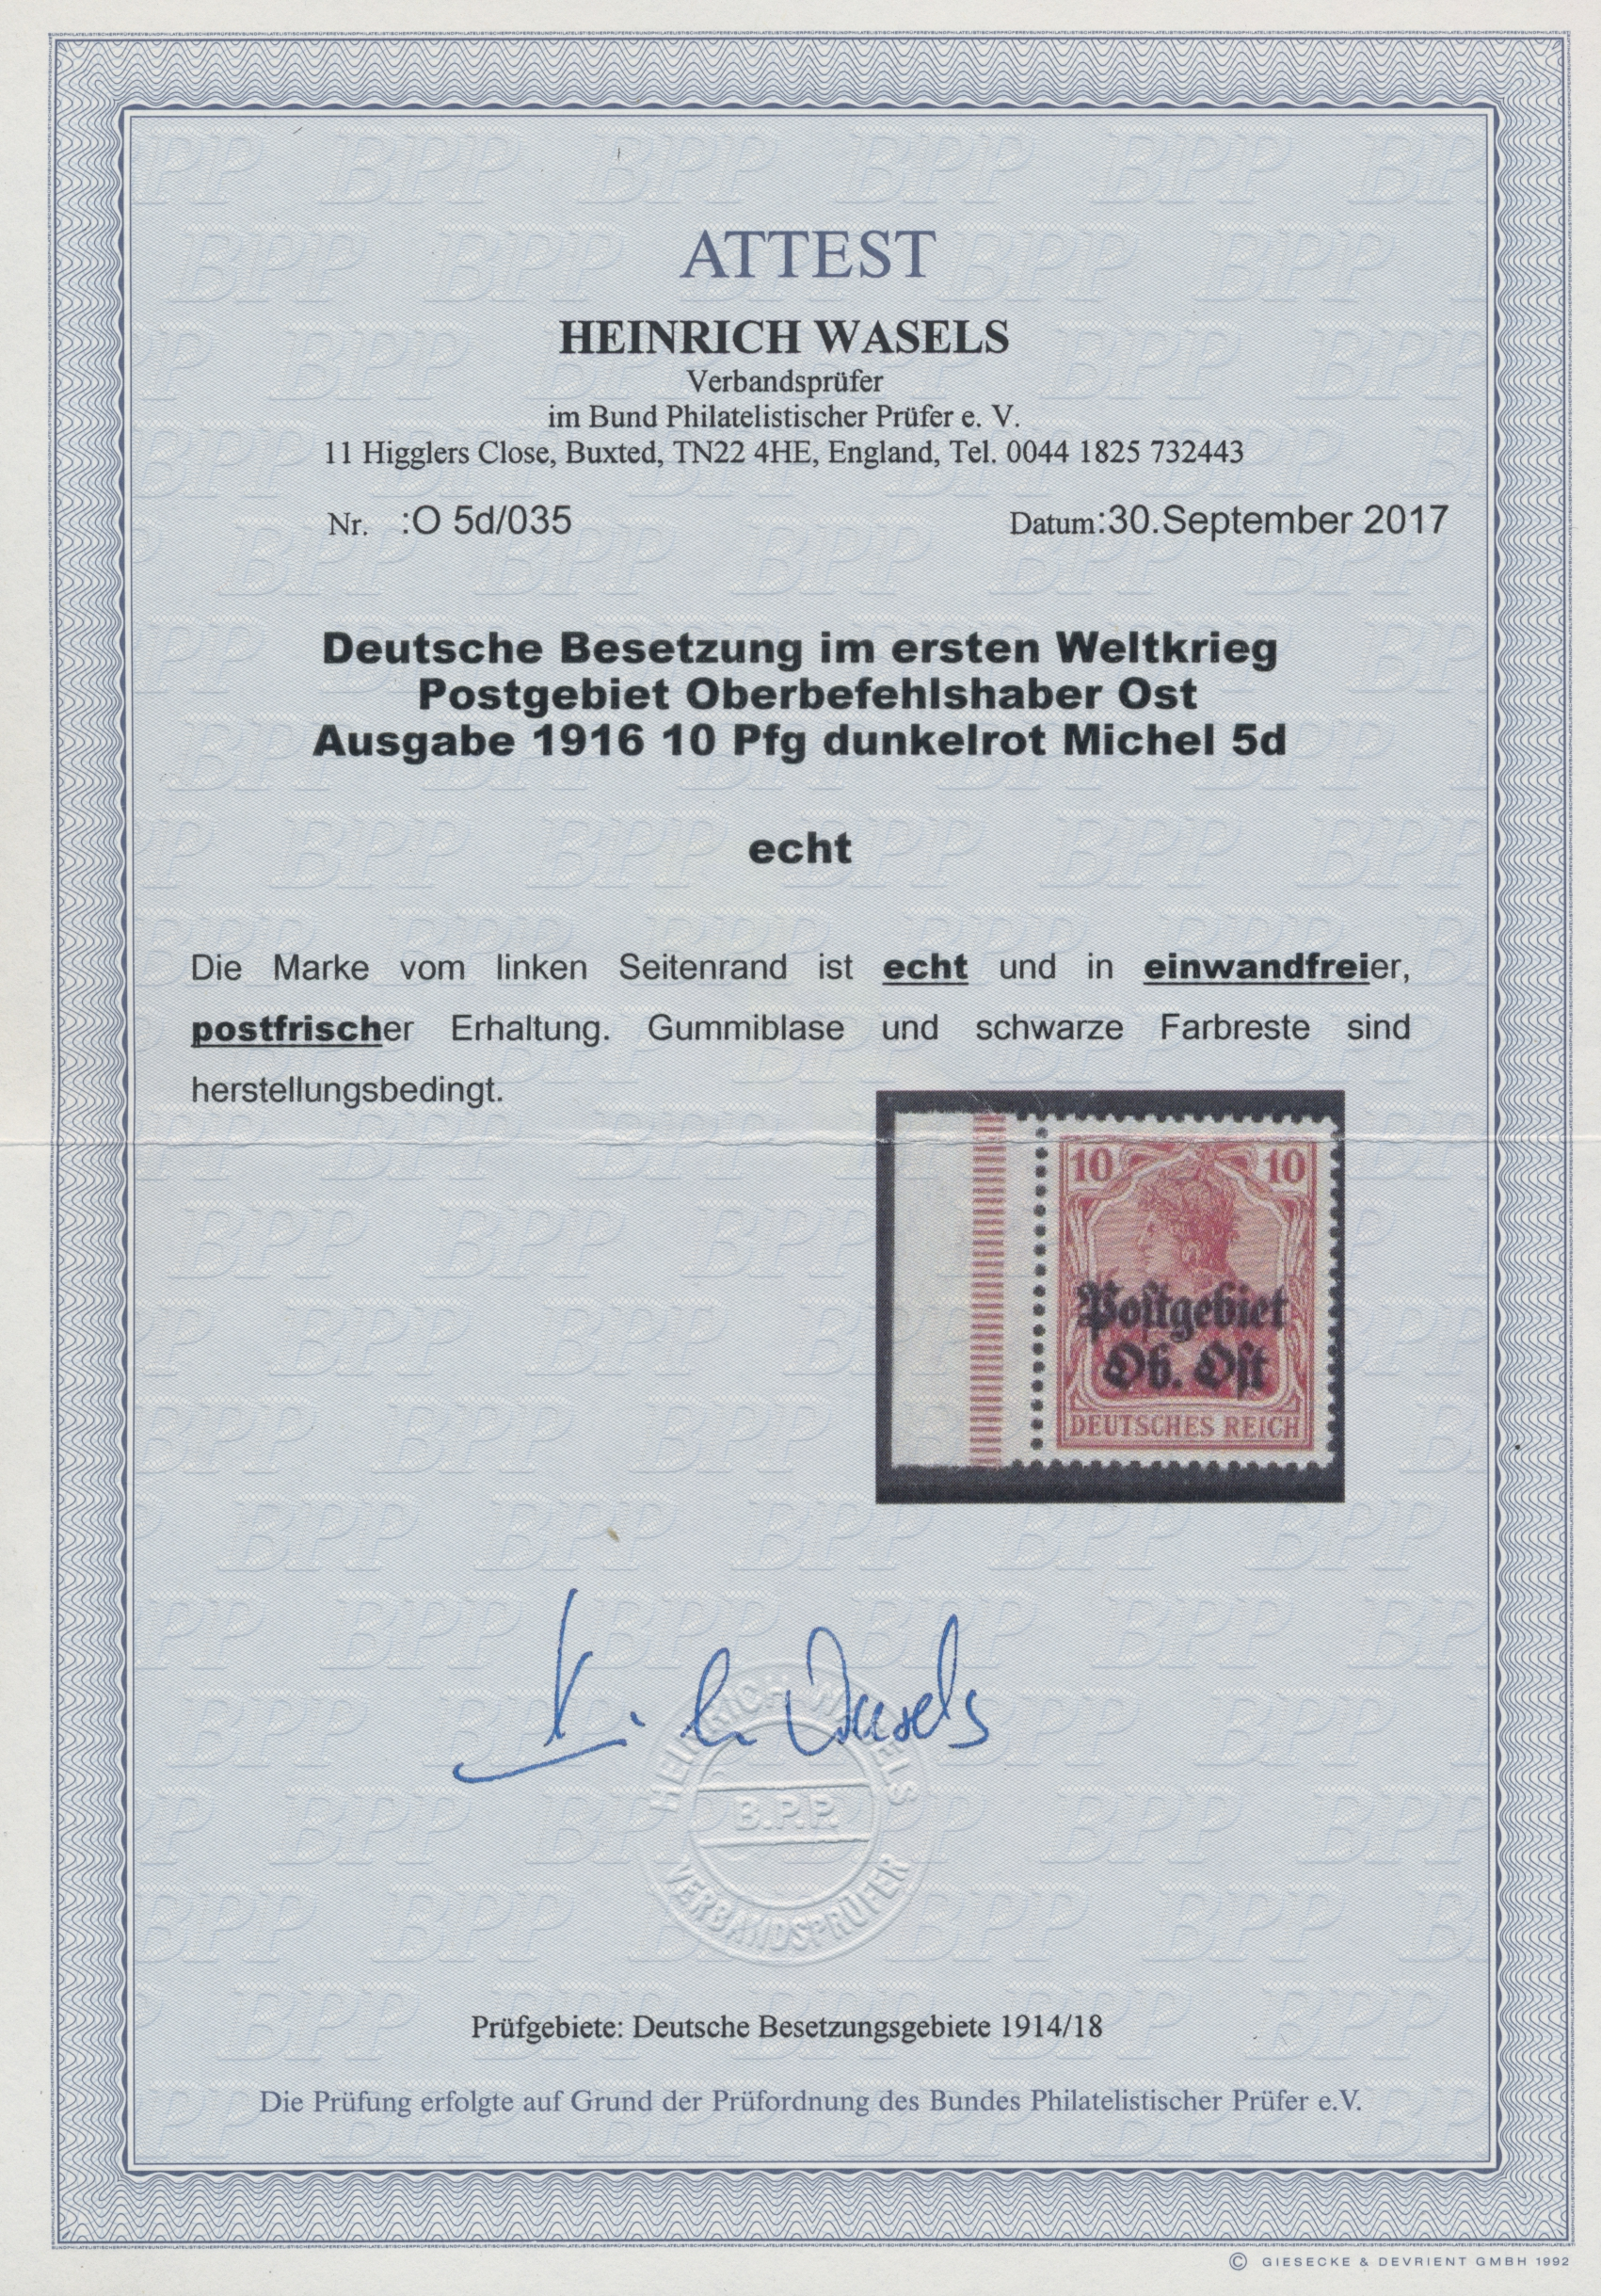 Lot 00175 - Deutsche Besetzung I. WK: Postgebiet Ober. Ost  -  Auktionshaus Christoph Gärtner GmbH & Co. KG Intenational Rarities and contains lots from the collection of Peter Zgonc